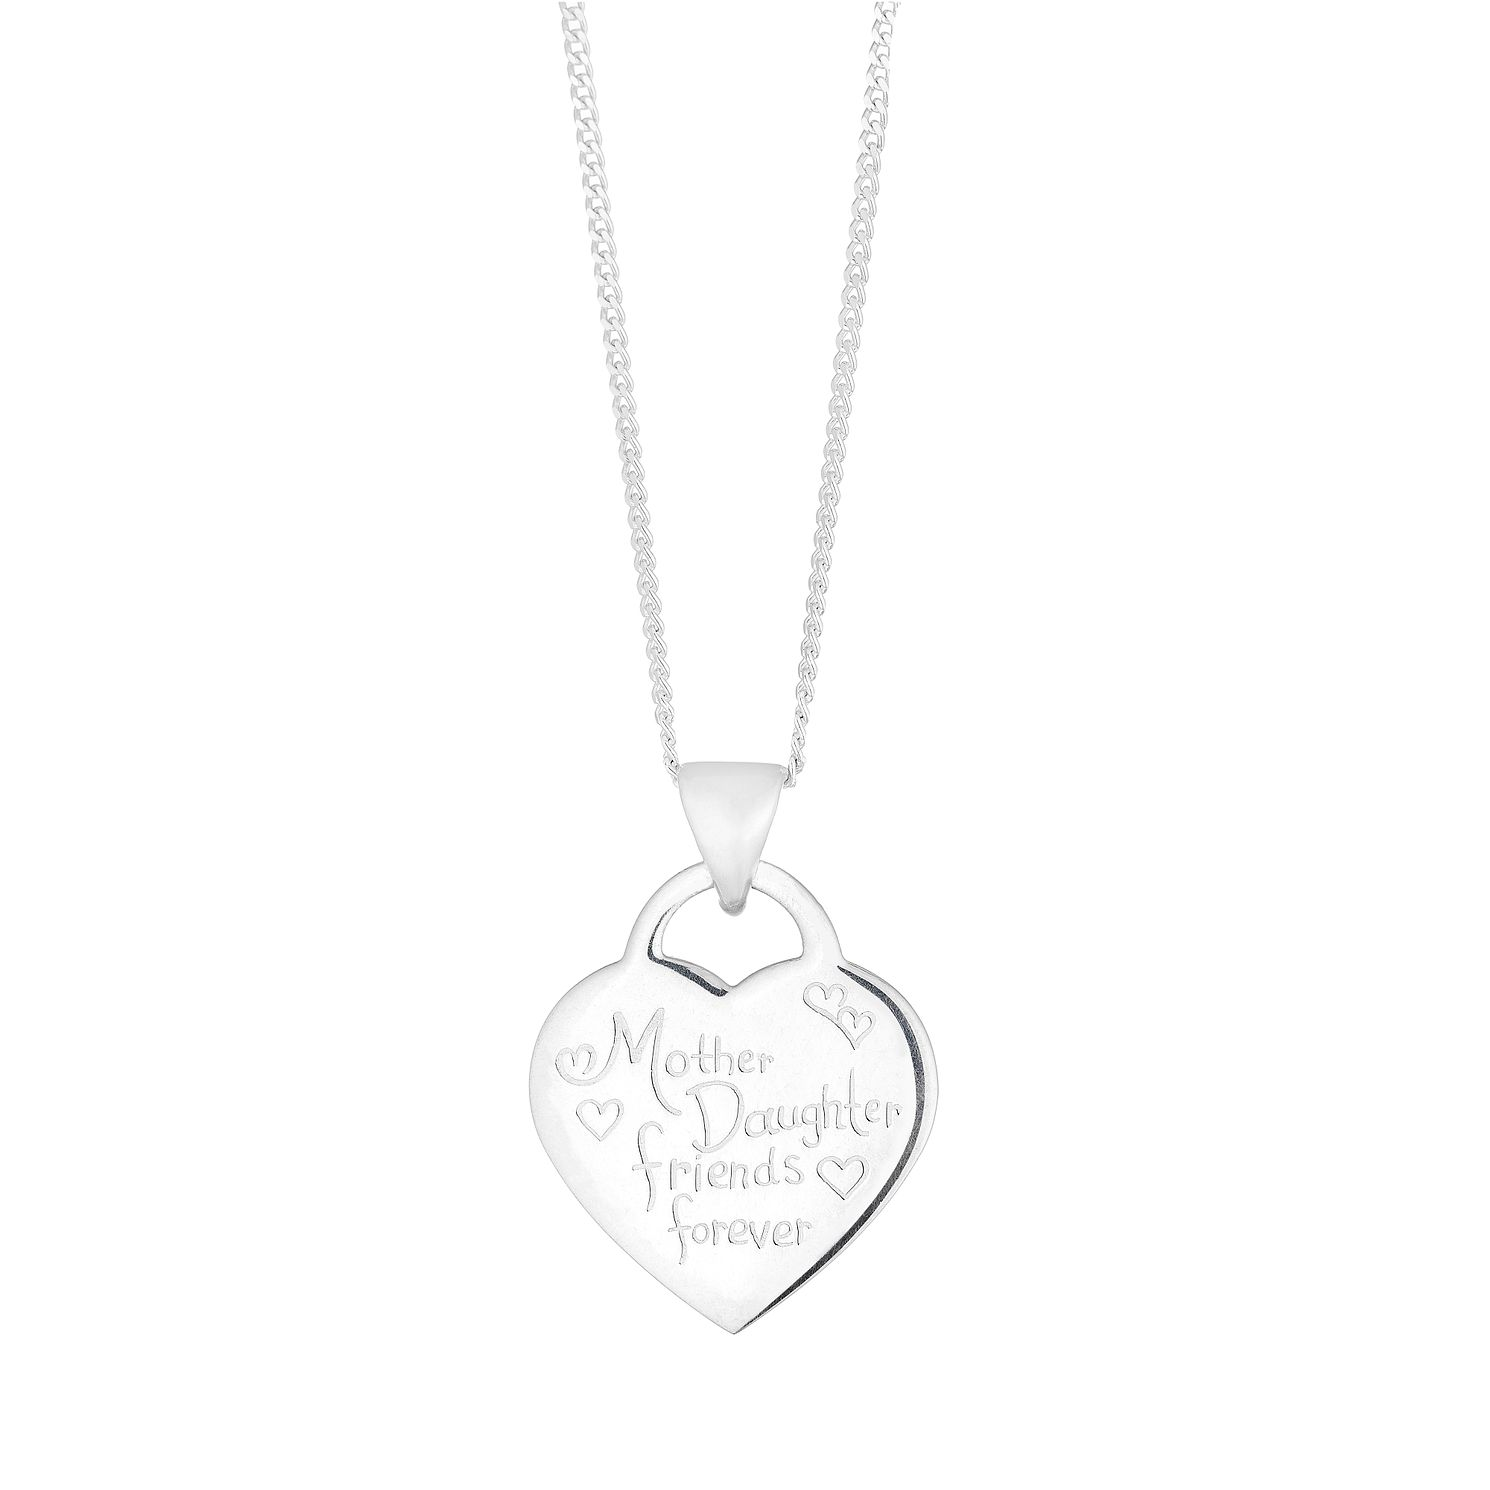 Silver Mother & Daughter Friends Forever Heart Pendant - Product number 4842812